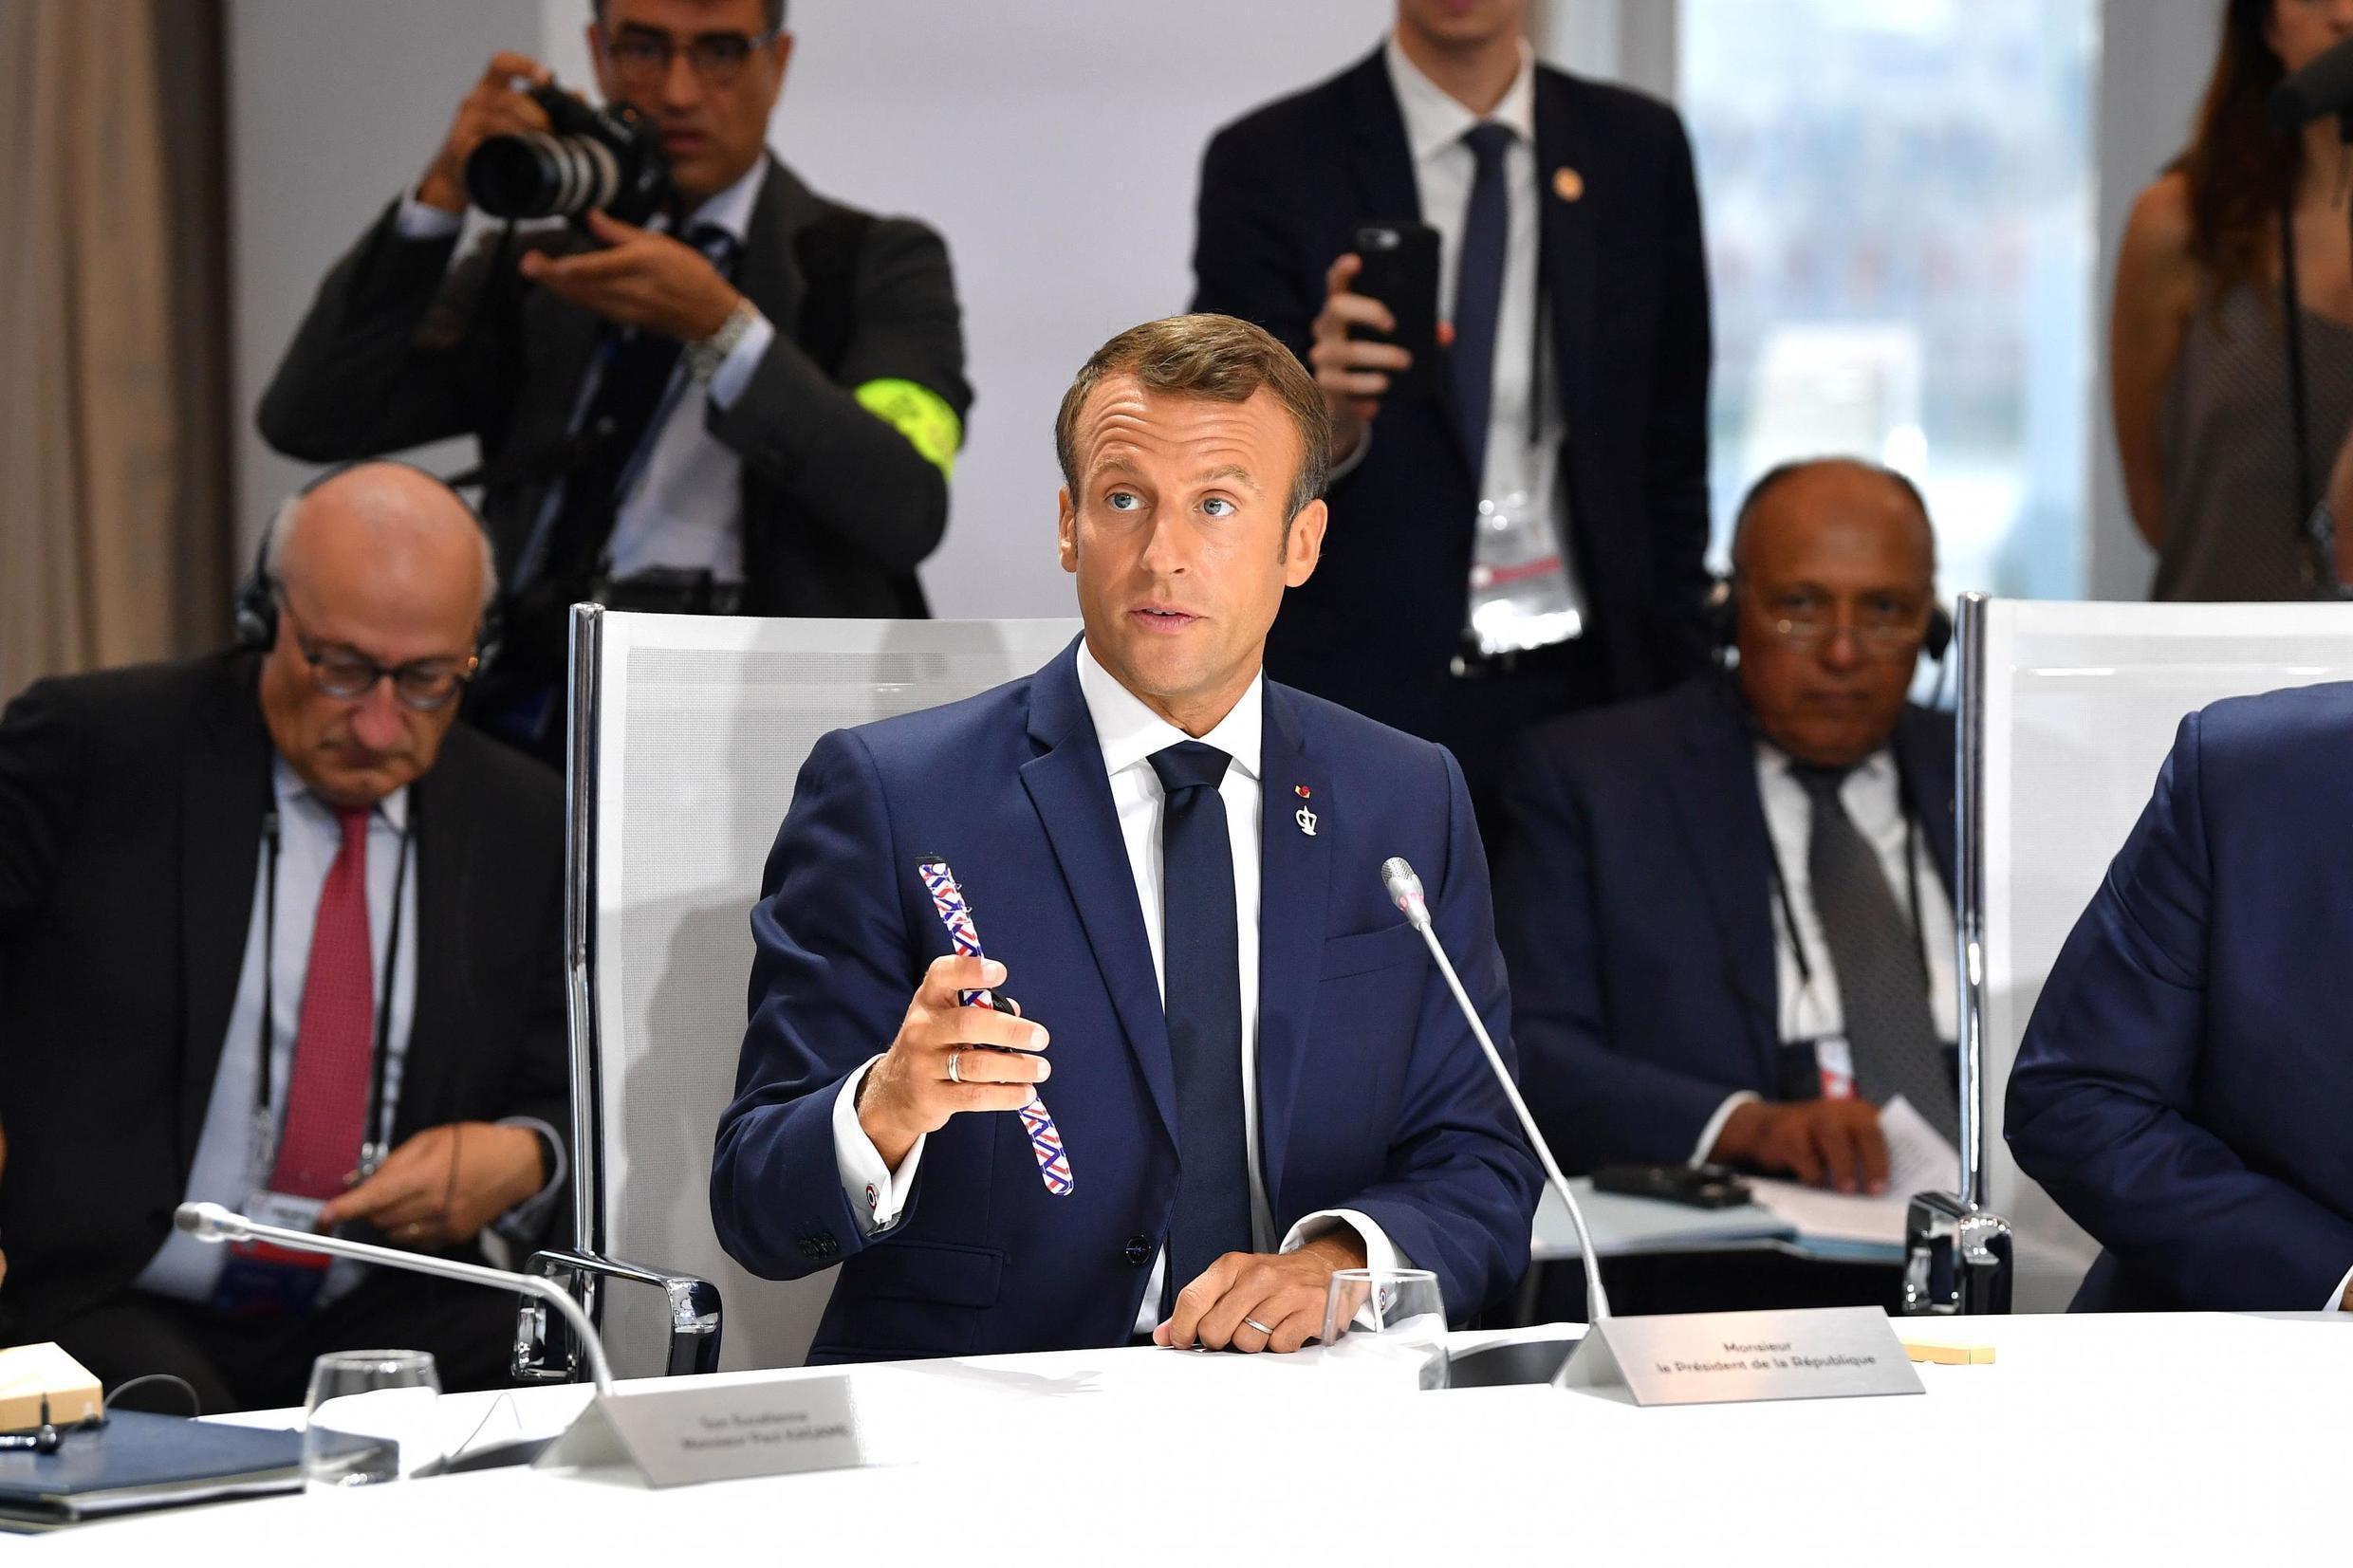 French President Emmanuel Macron on the final day of the G7 Summit in Biarritz, France, 26 August 2019.